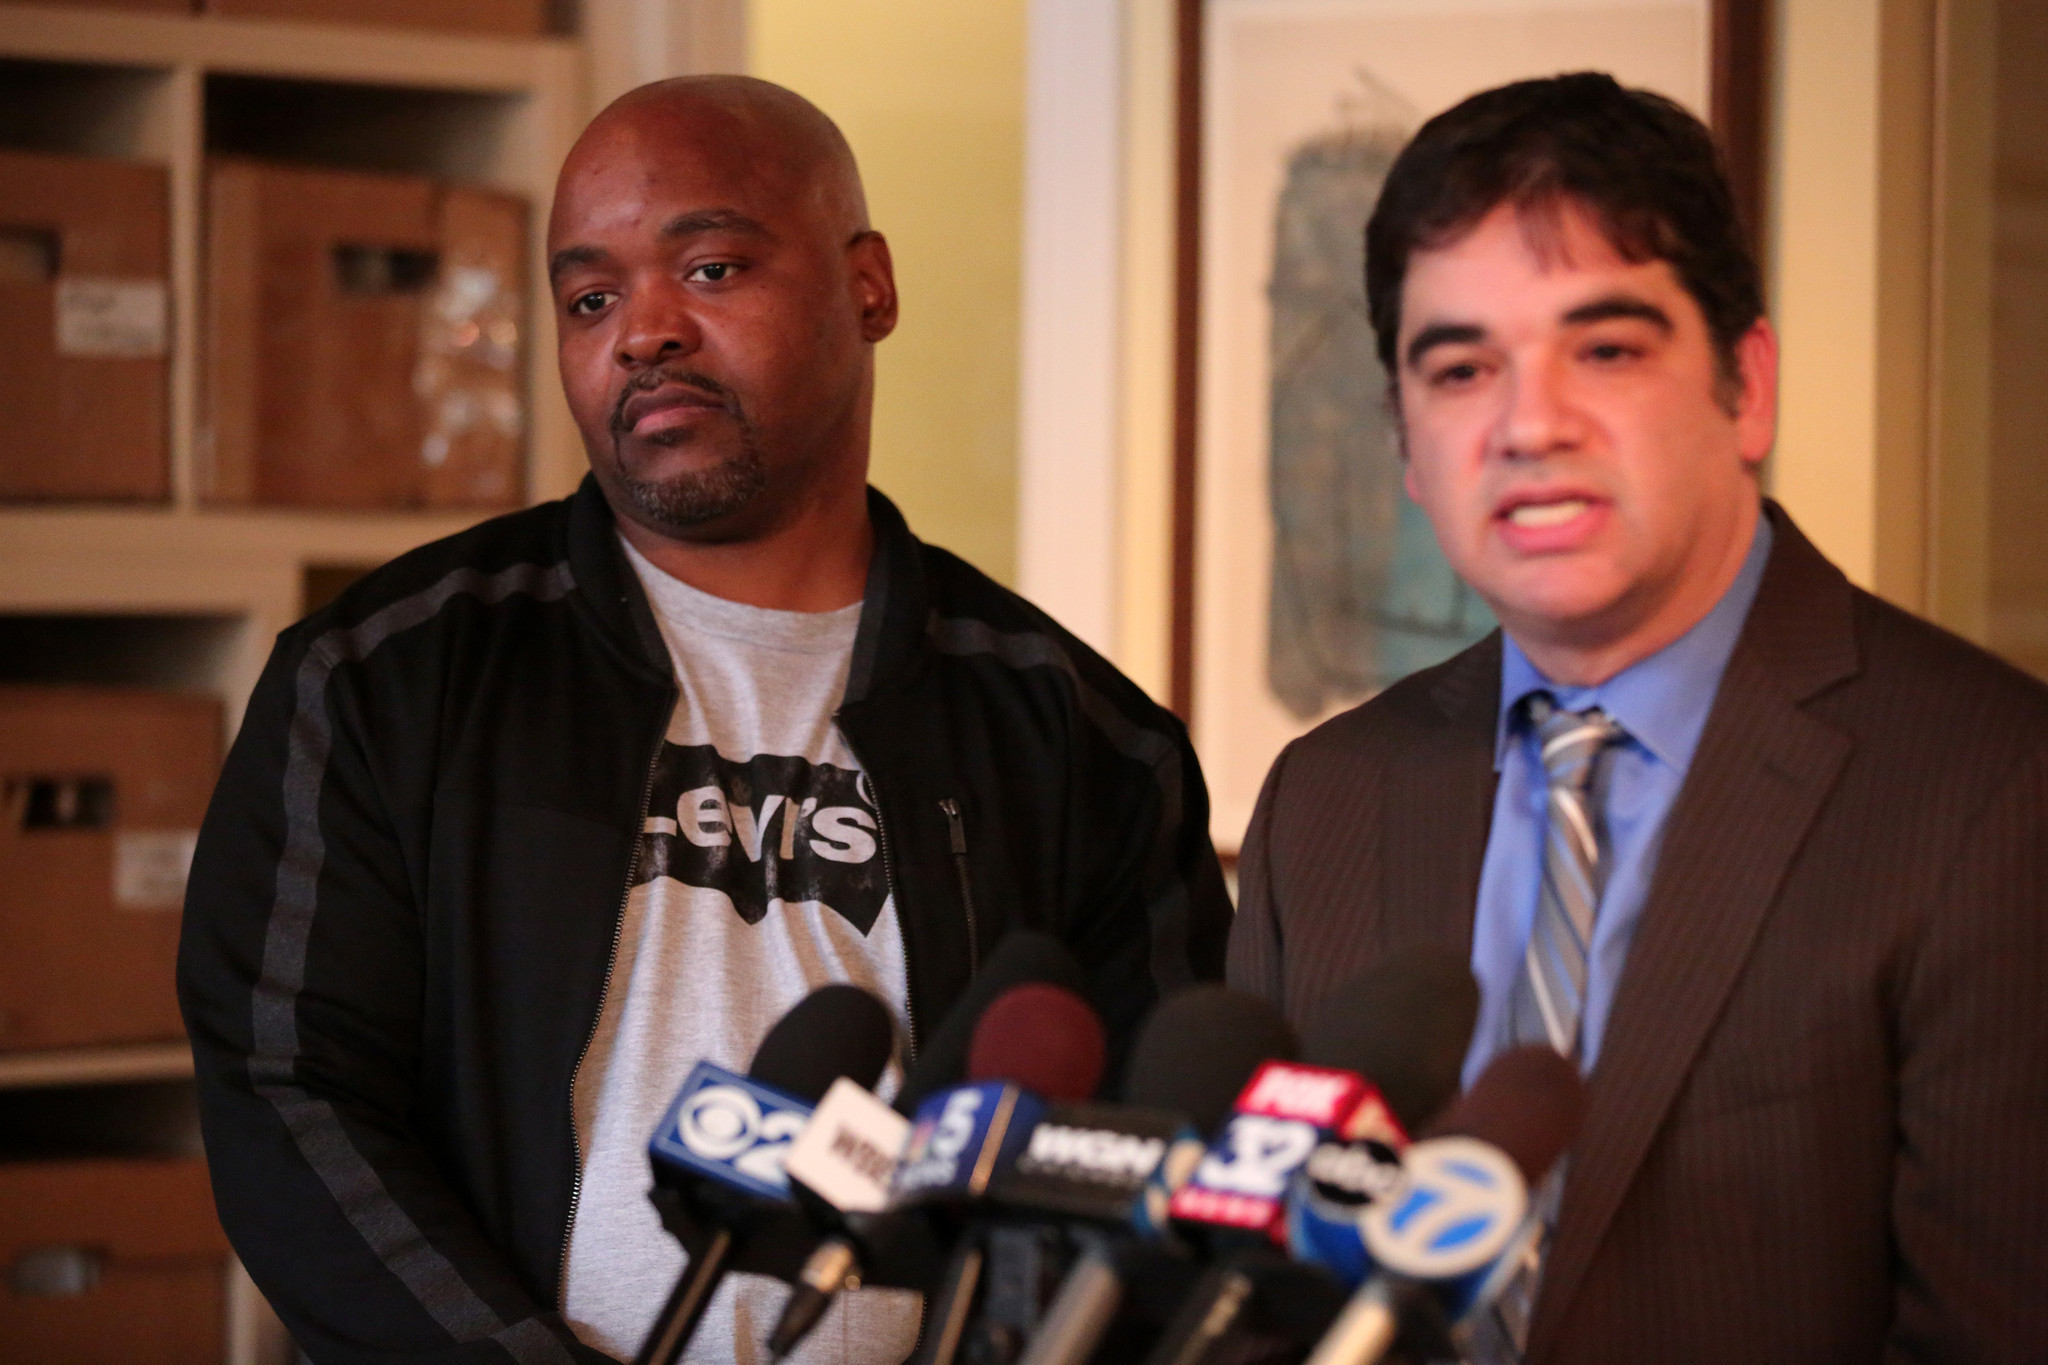 Chicago man to be freed in drug case tainted by police